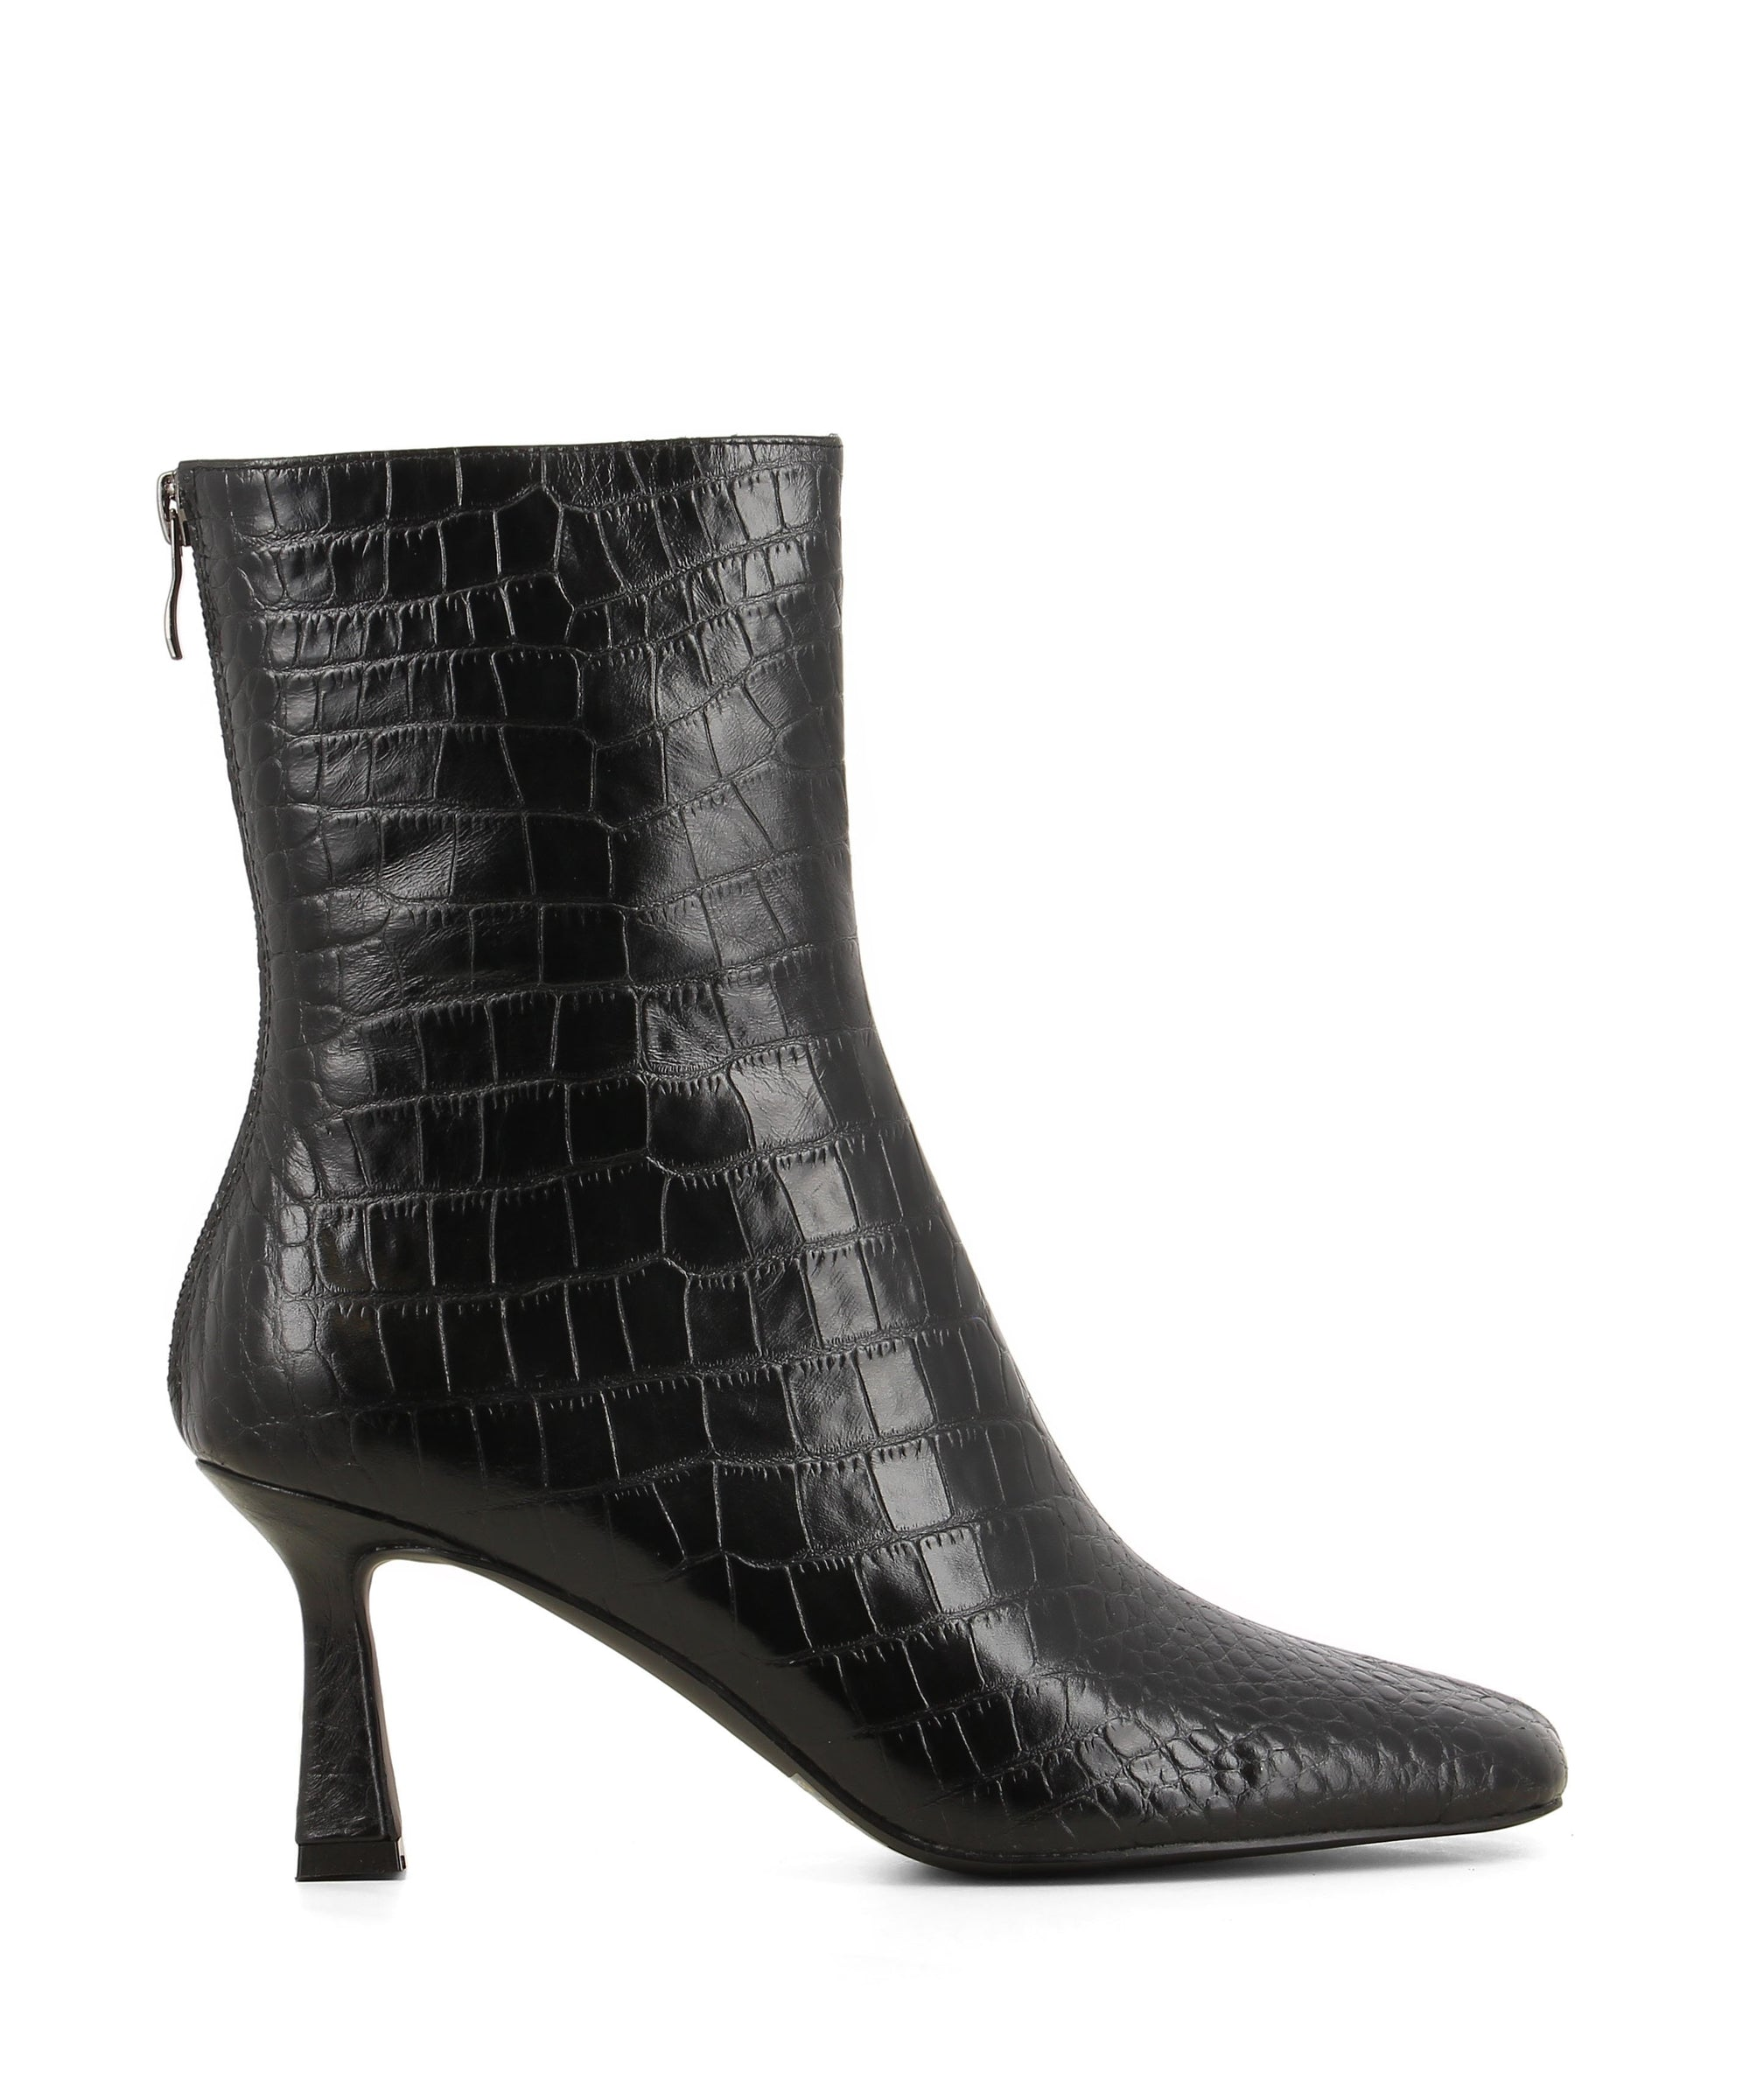 Black leather ankle boots featuring zipper fastenings, a croc embossed upper, an hourglass heel and a square toe by 2 Baia Vista.